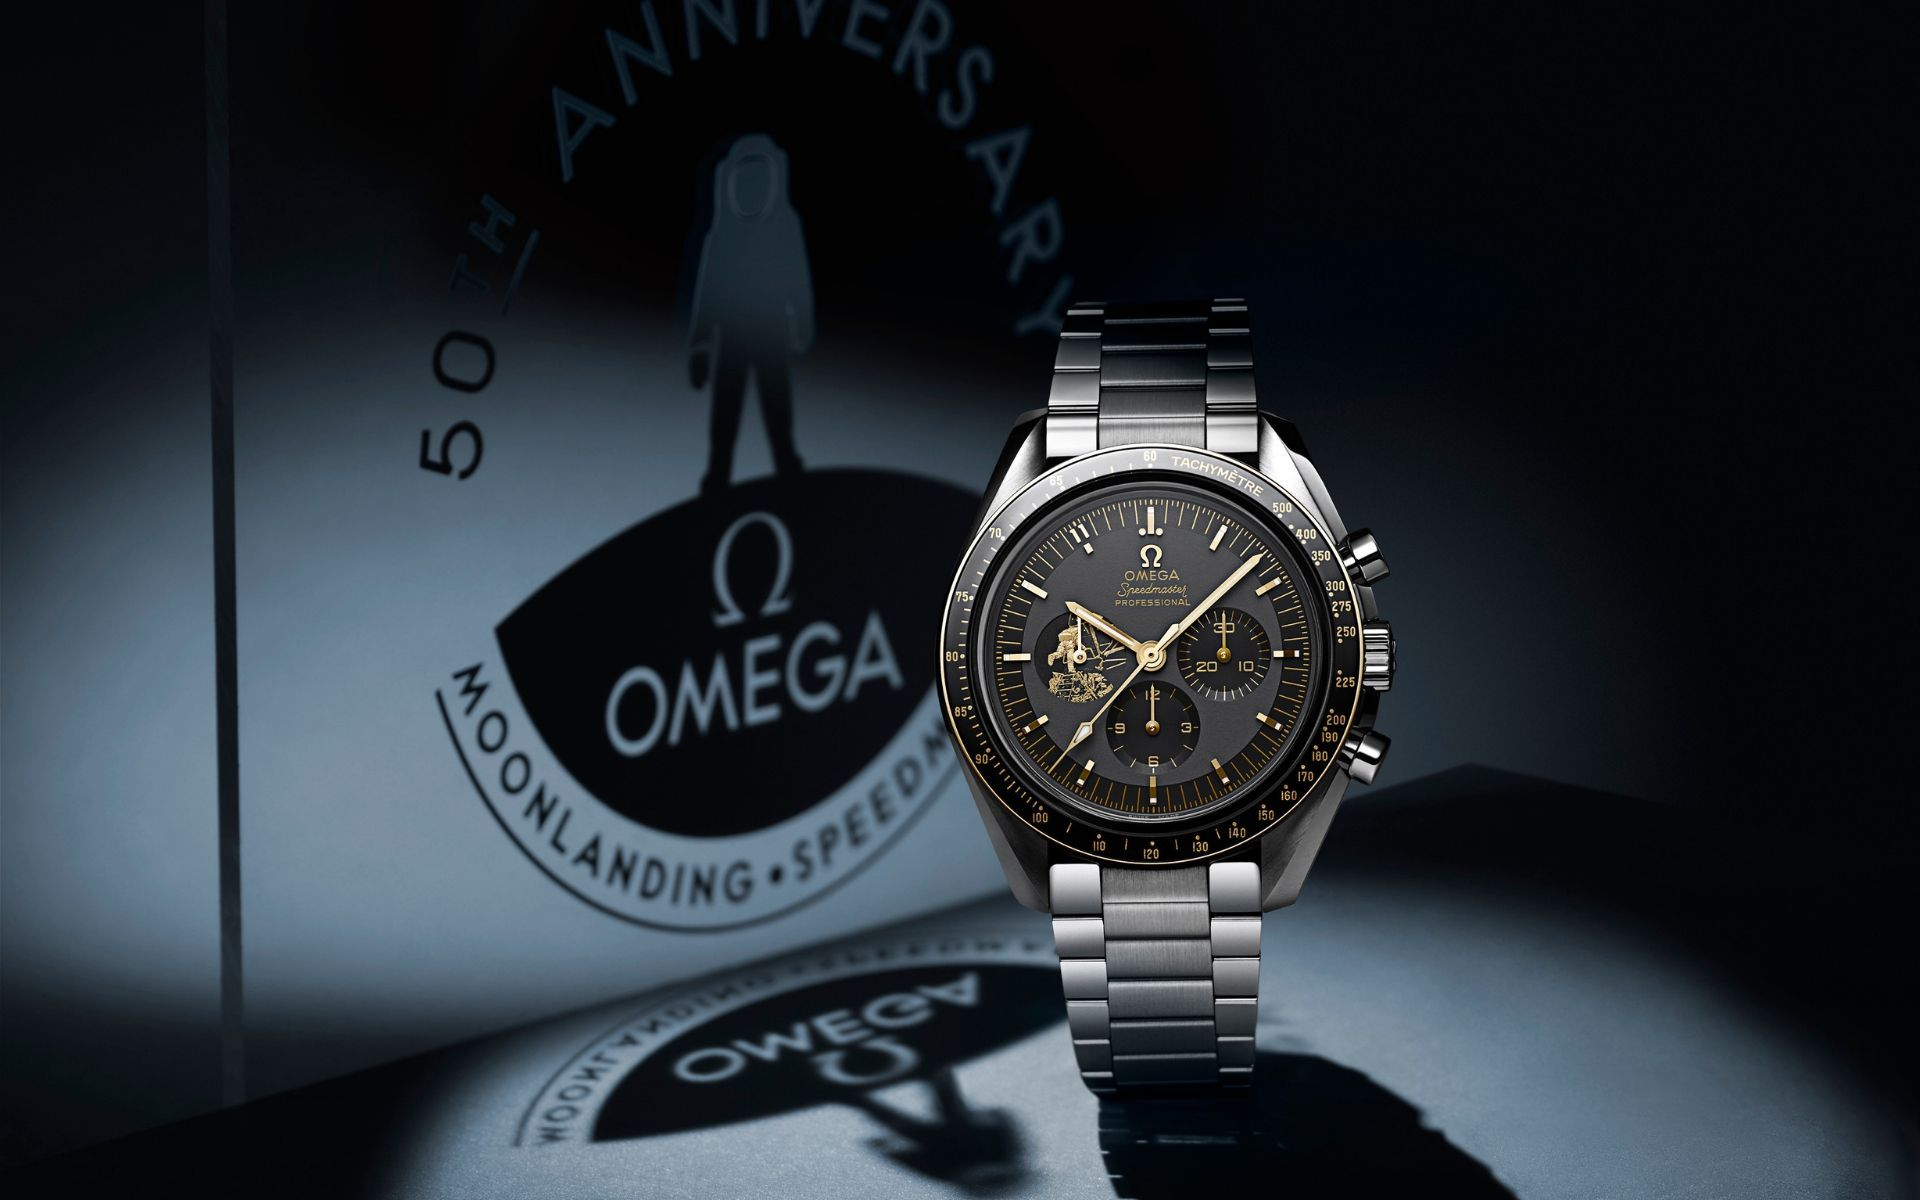 Speedmaster Apollo 11 celebrates the 50th anniversary of the men's first step on the moon